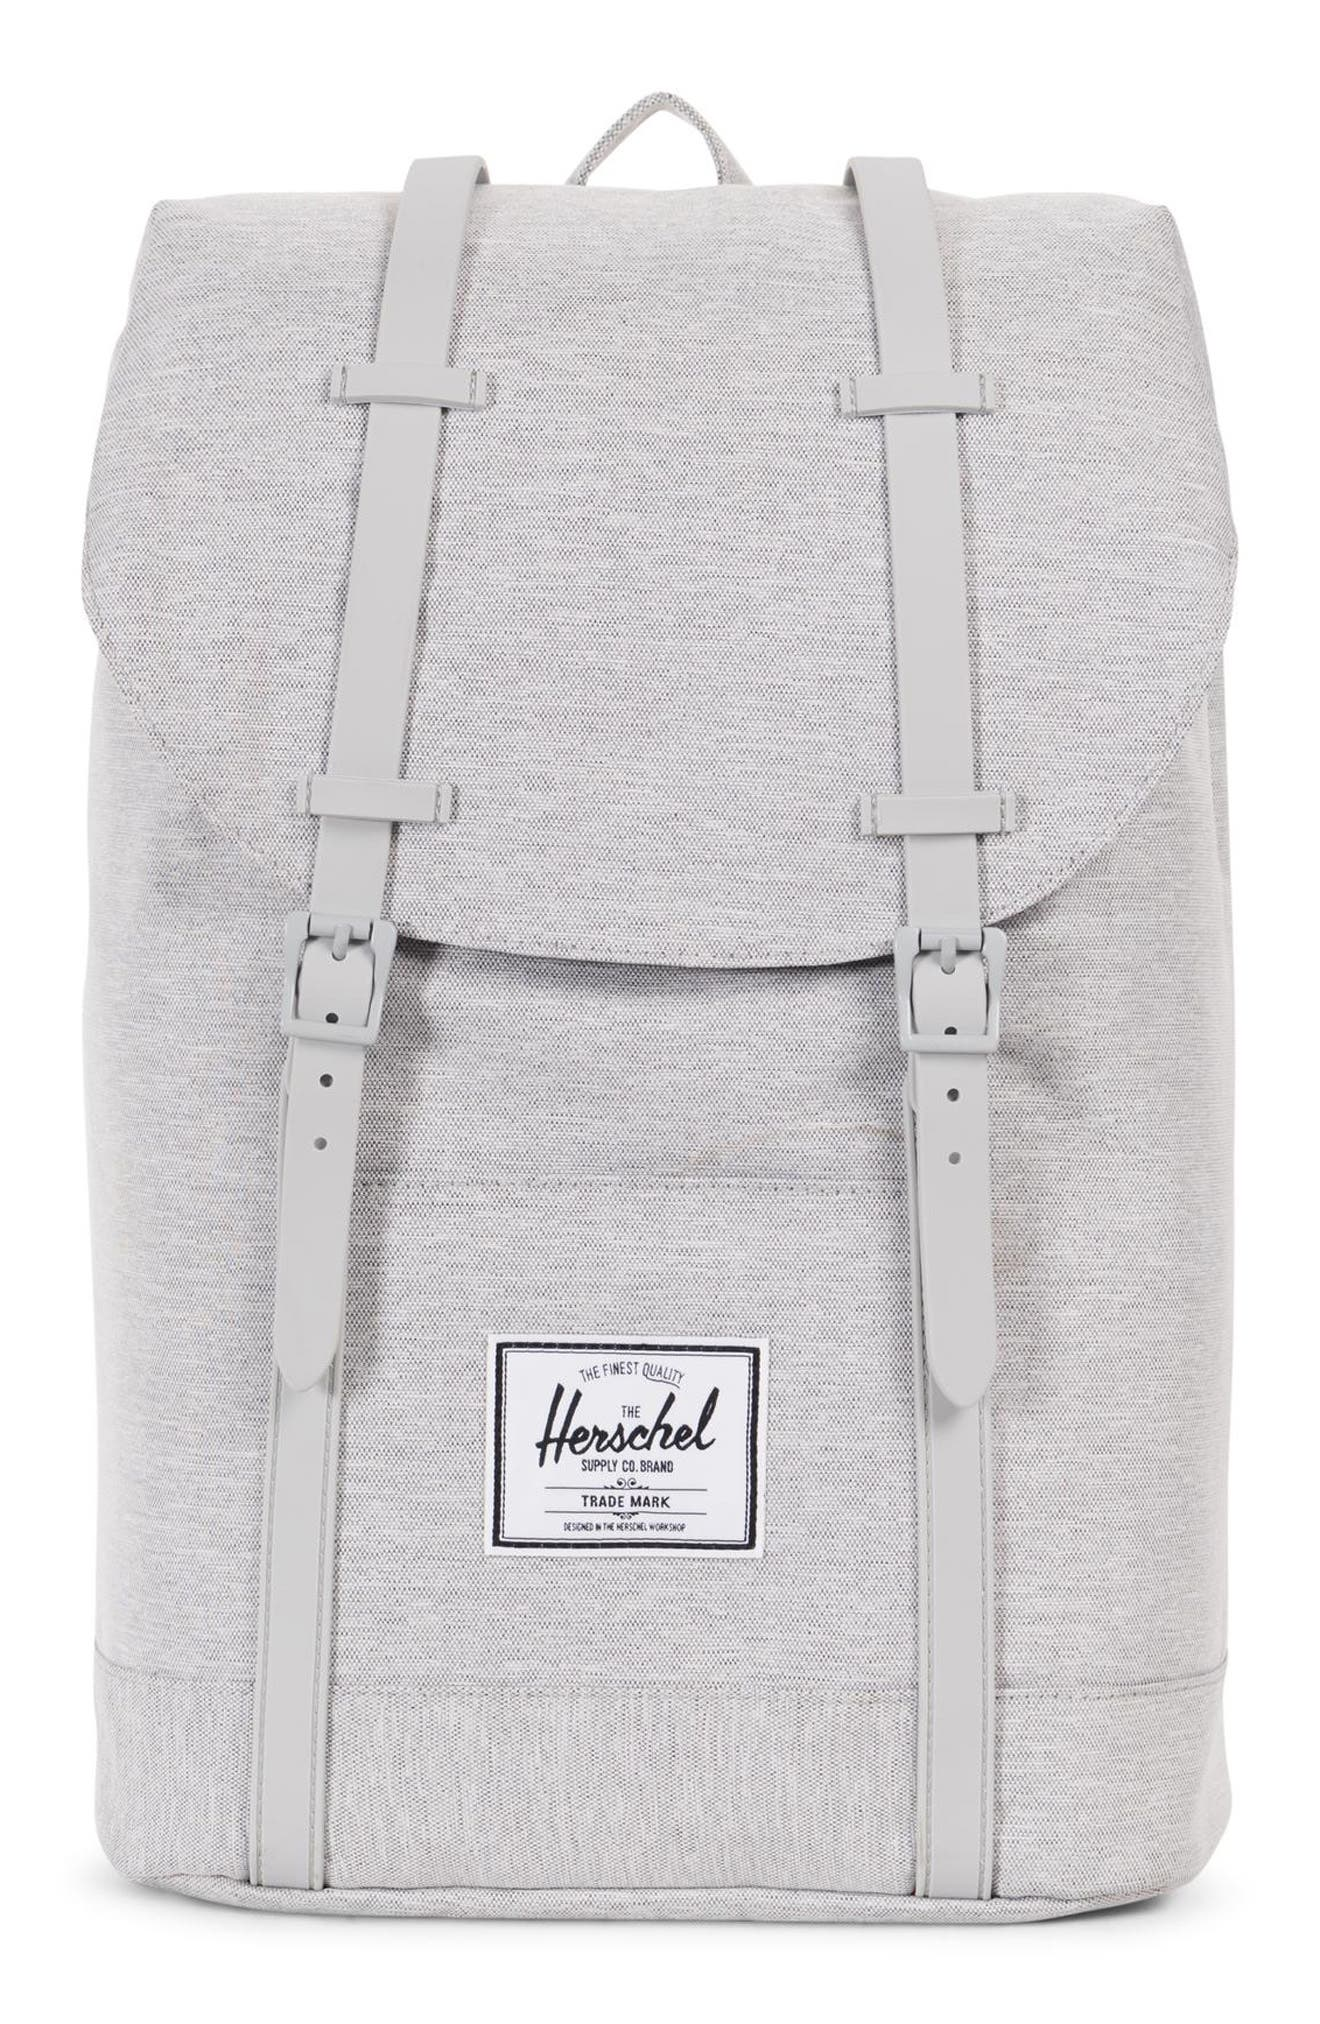 Retreat Backpack,                             Main thumbnail 1, color,                             LIGHT GREY CROSSHATCH/ GREY